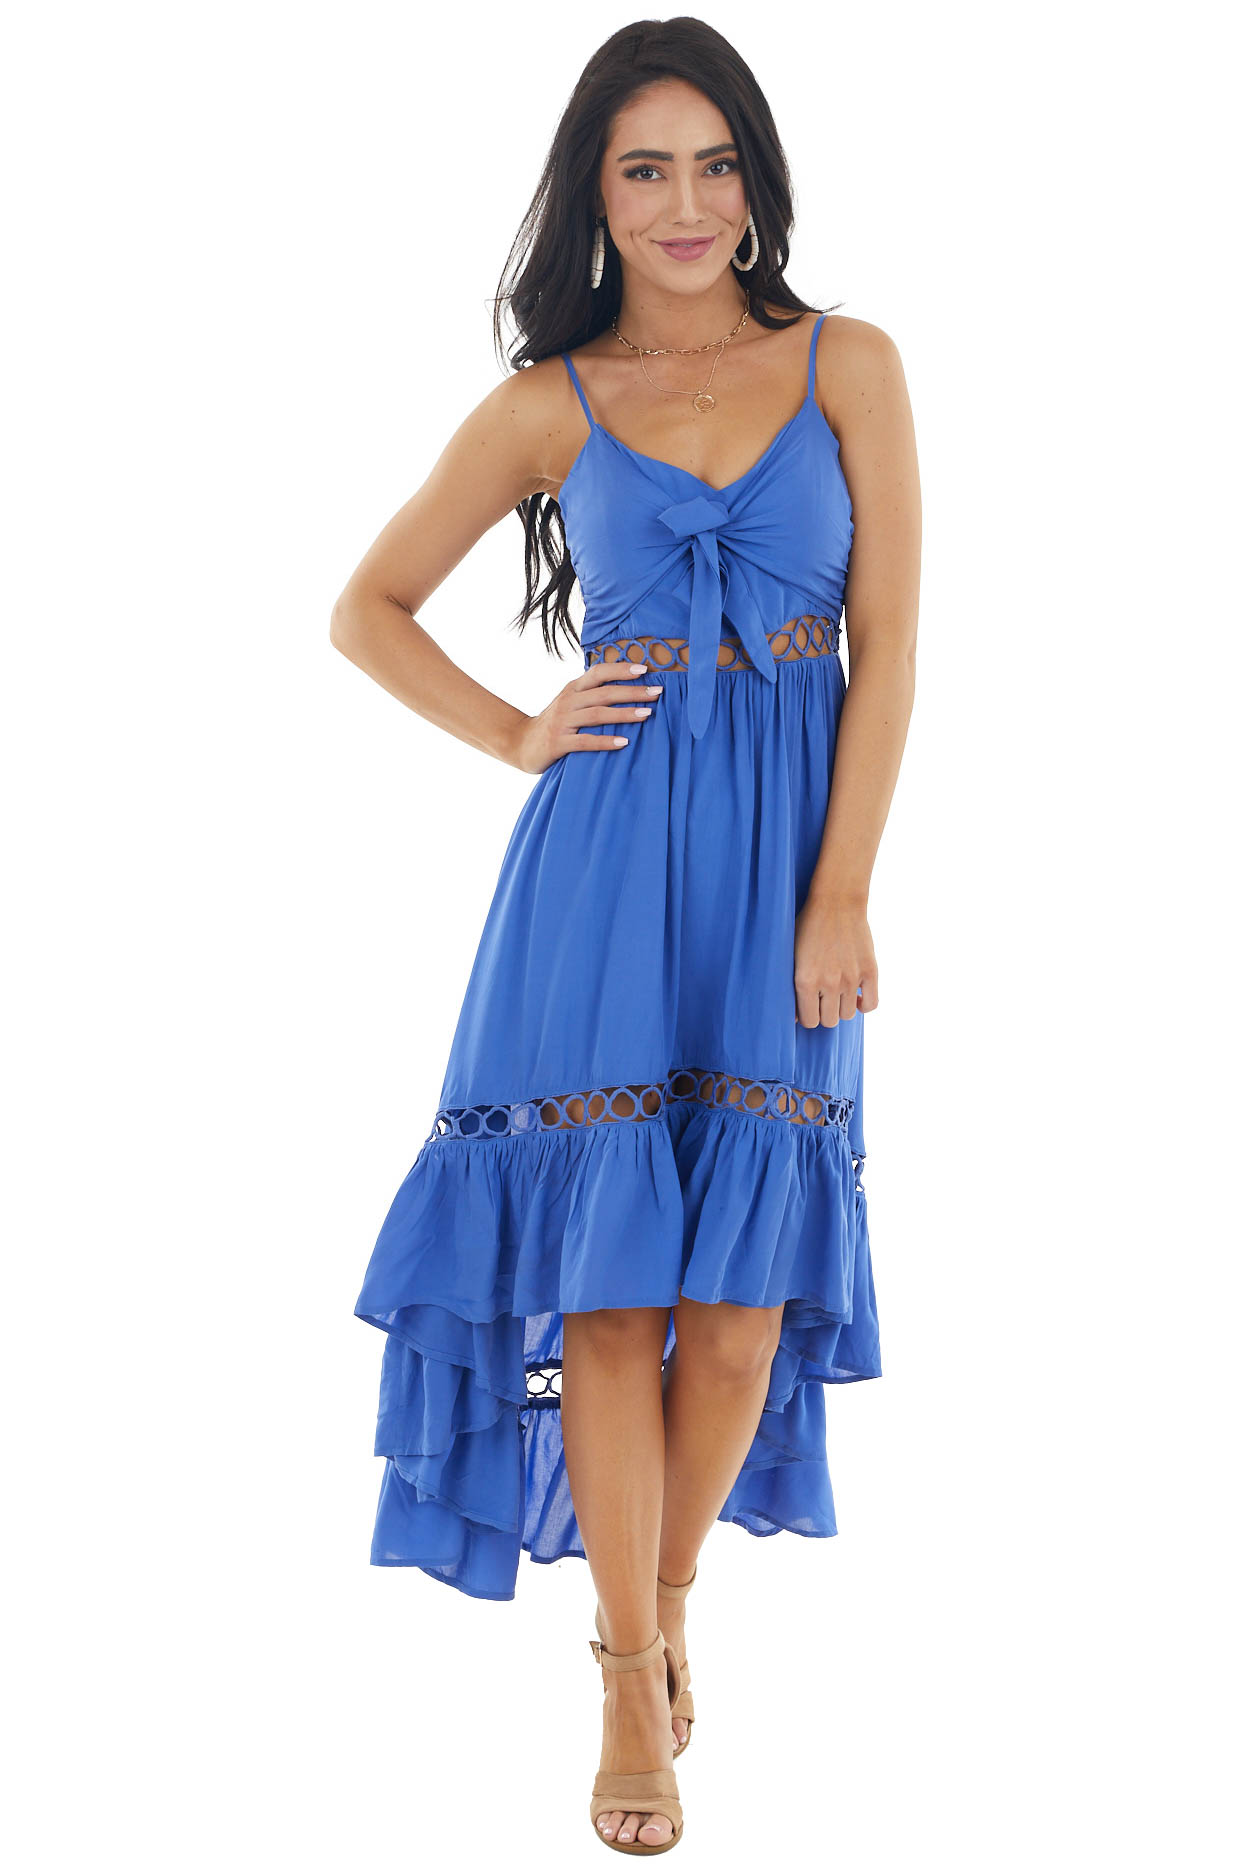 Royal Blue High Low Midi Dress with Tie and Peekaboo Details